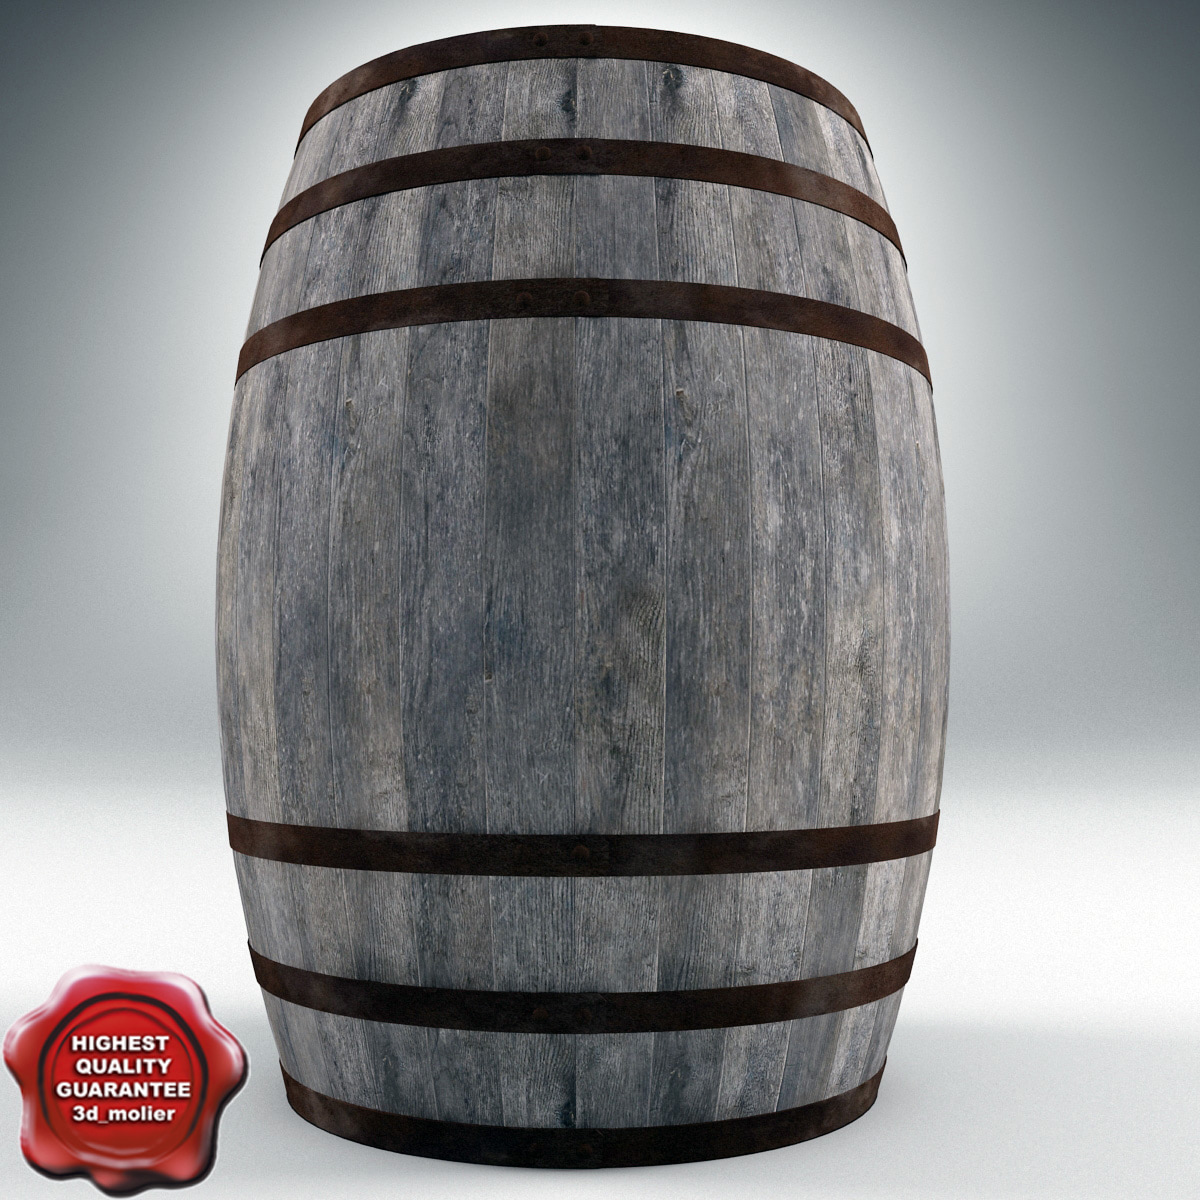 Old_Barrel_0.jpg